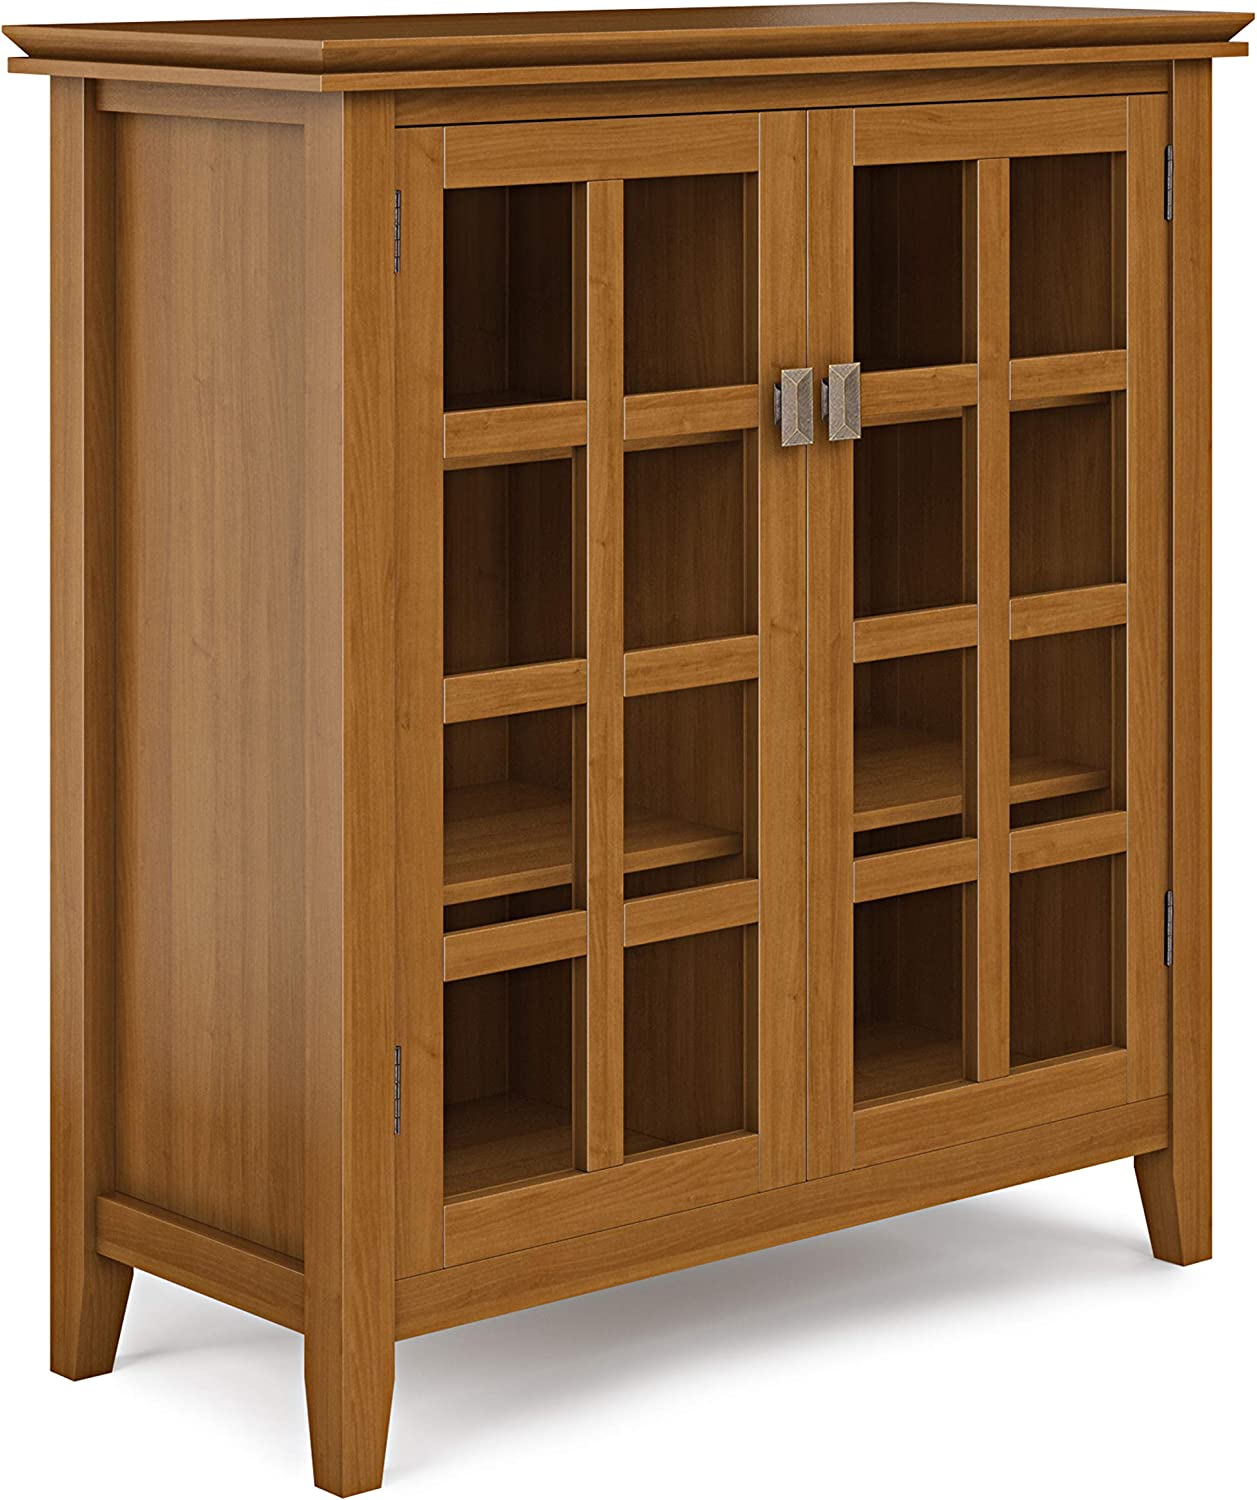 SIMPLIHOME Artisan SOLID WOOD 38 inch Wide Contemporary Medium Storage Cabinet in Honey Brown, with 2 tempered glass doors , 4 adjustable shelves